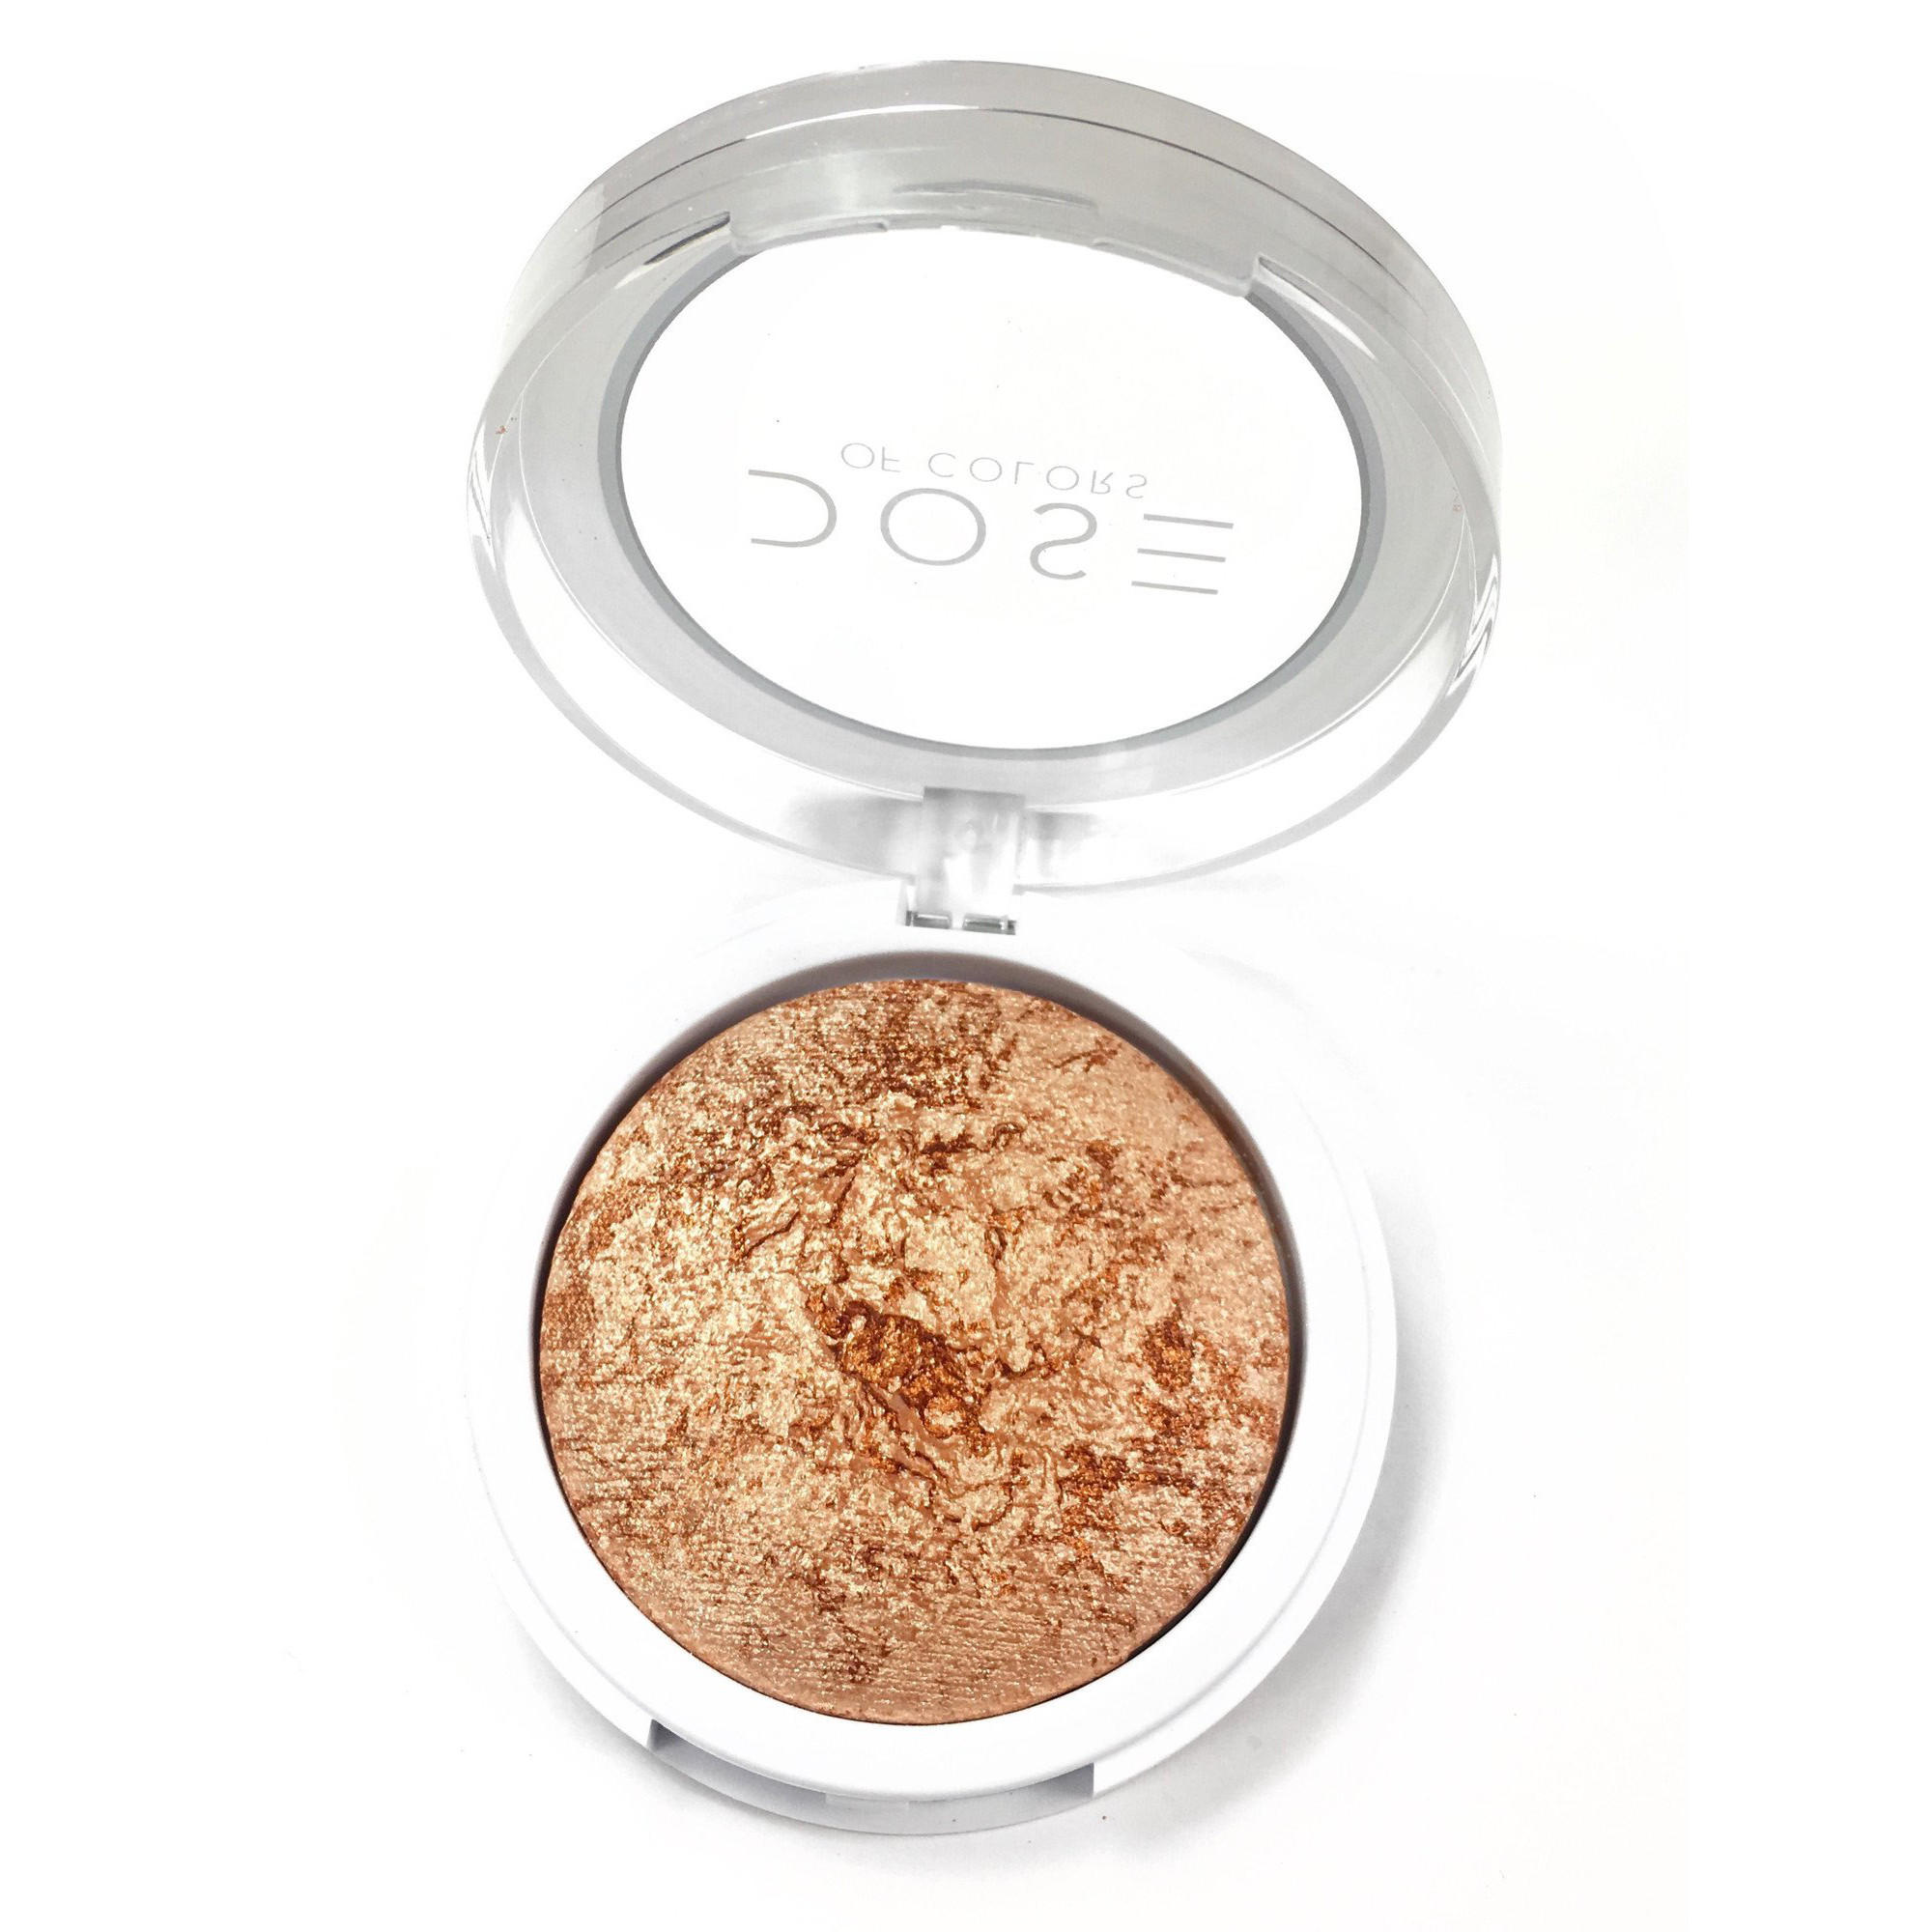 Dose Of Colors Baked Highlighter Sunkissed